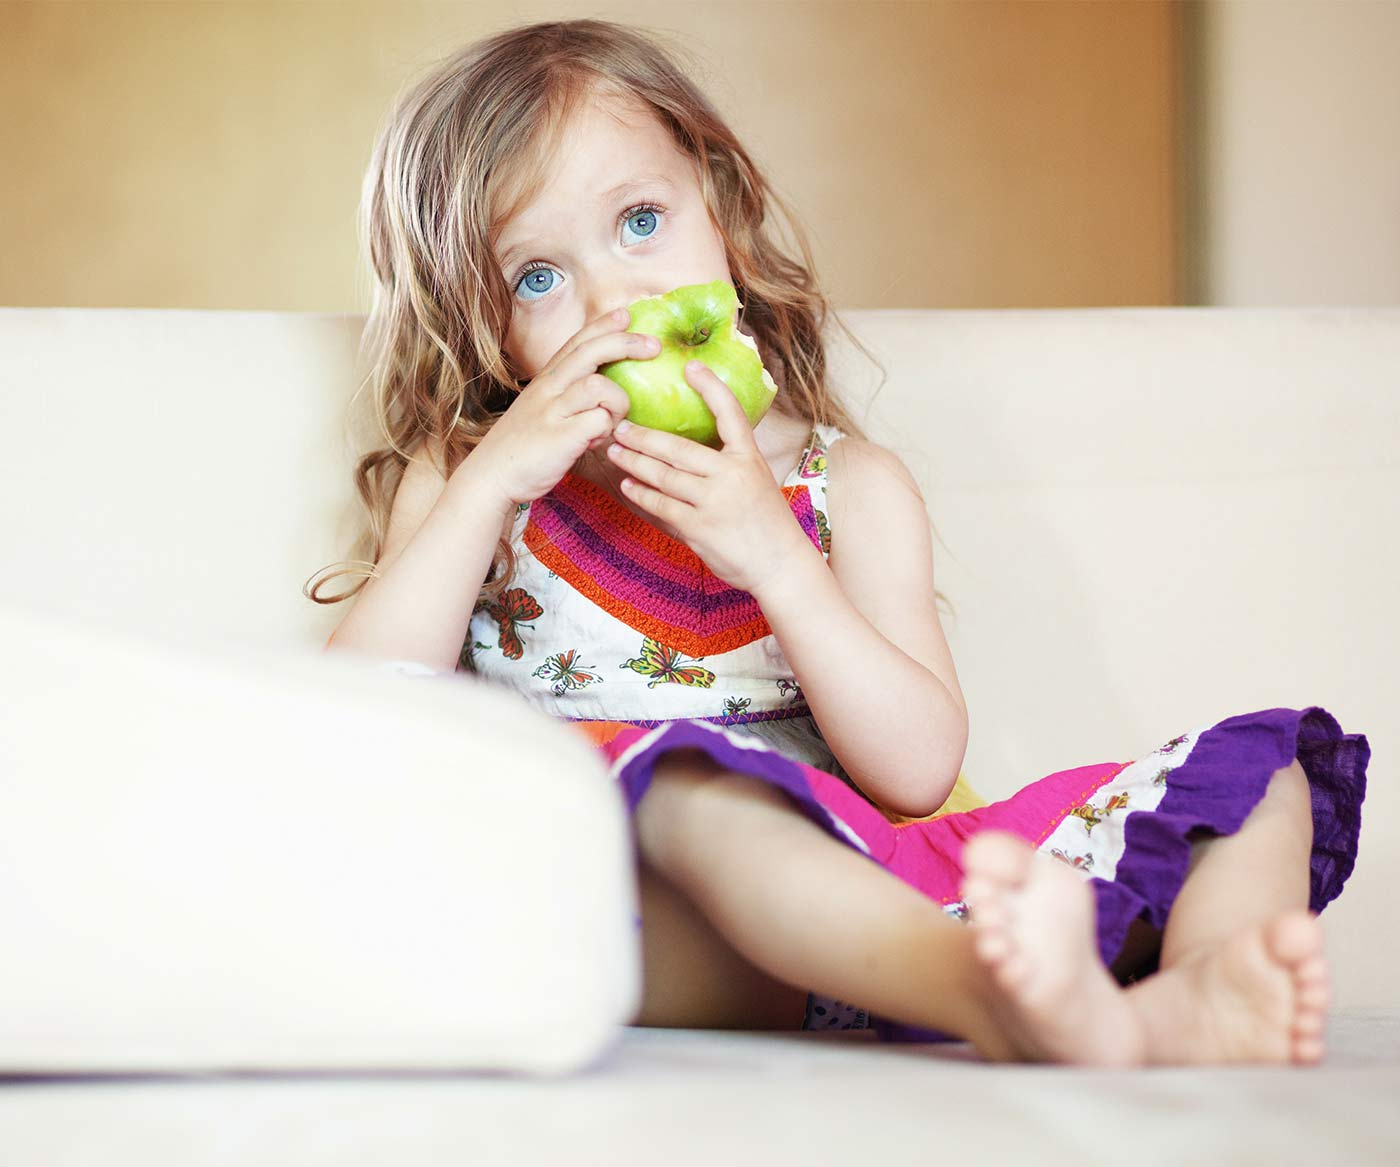 Little girl eating an apple